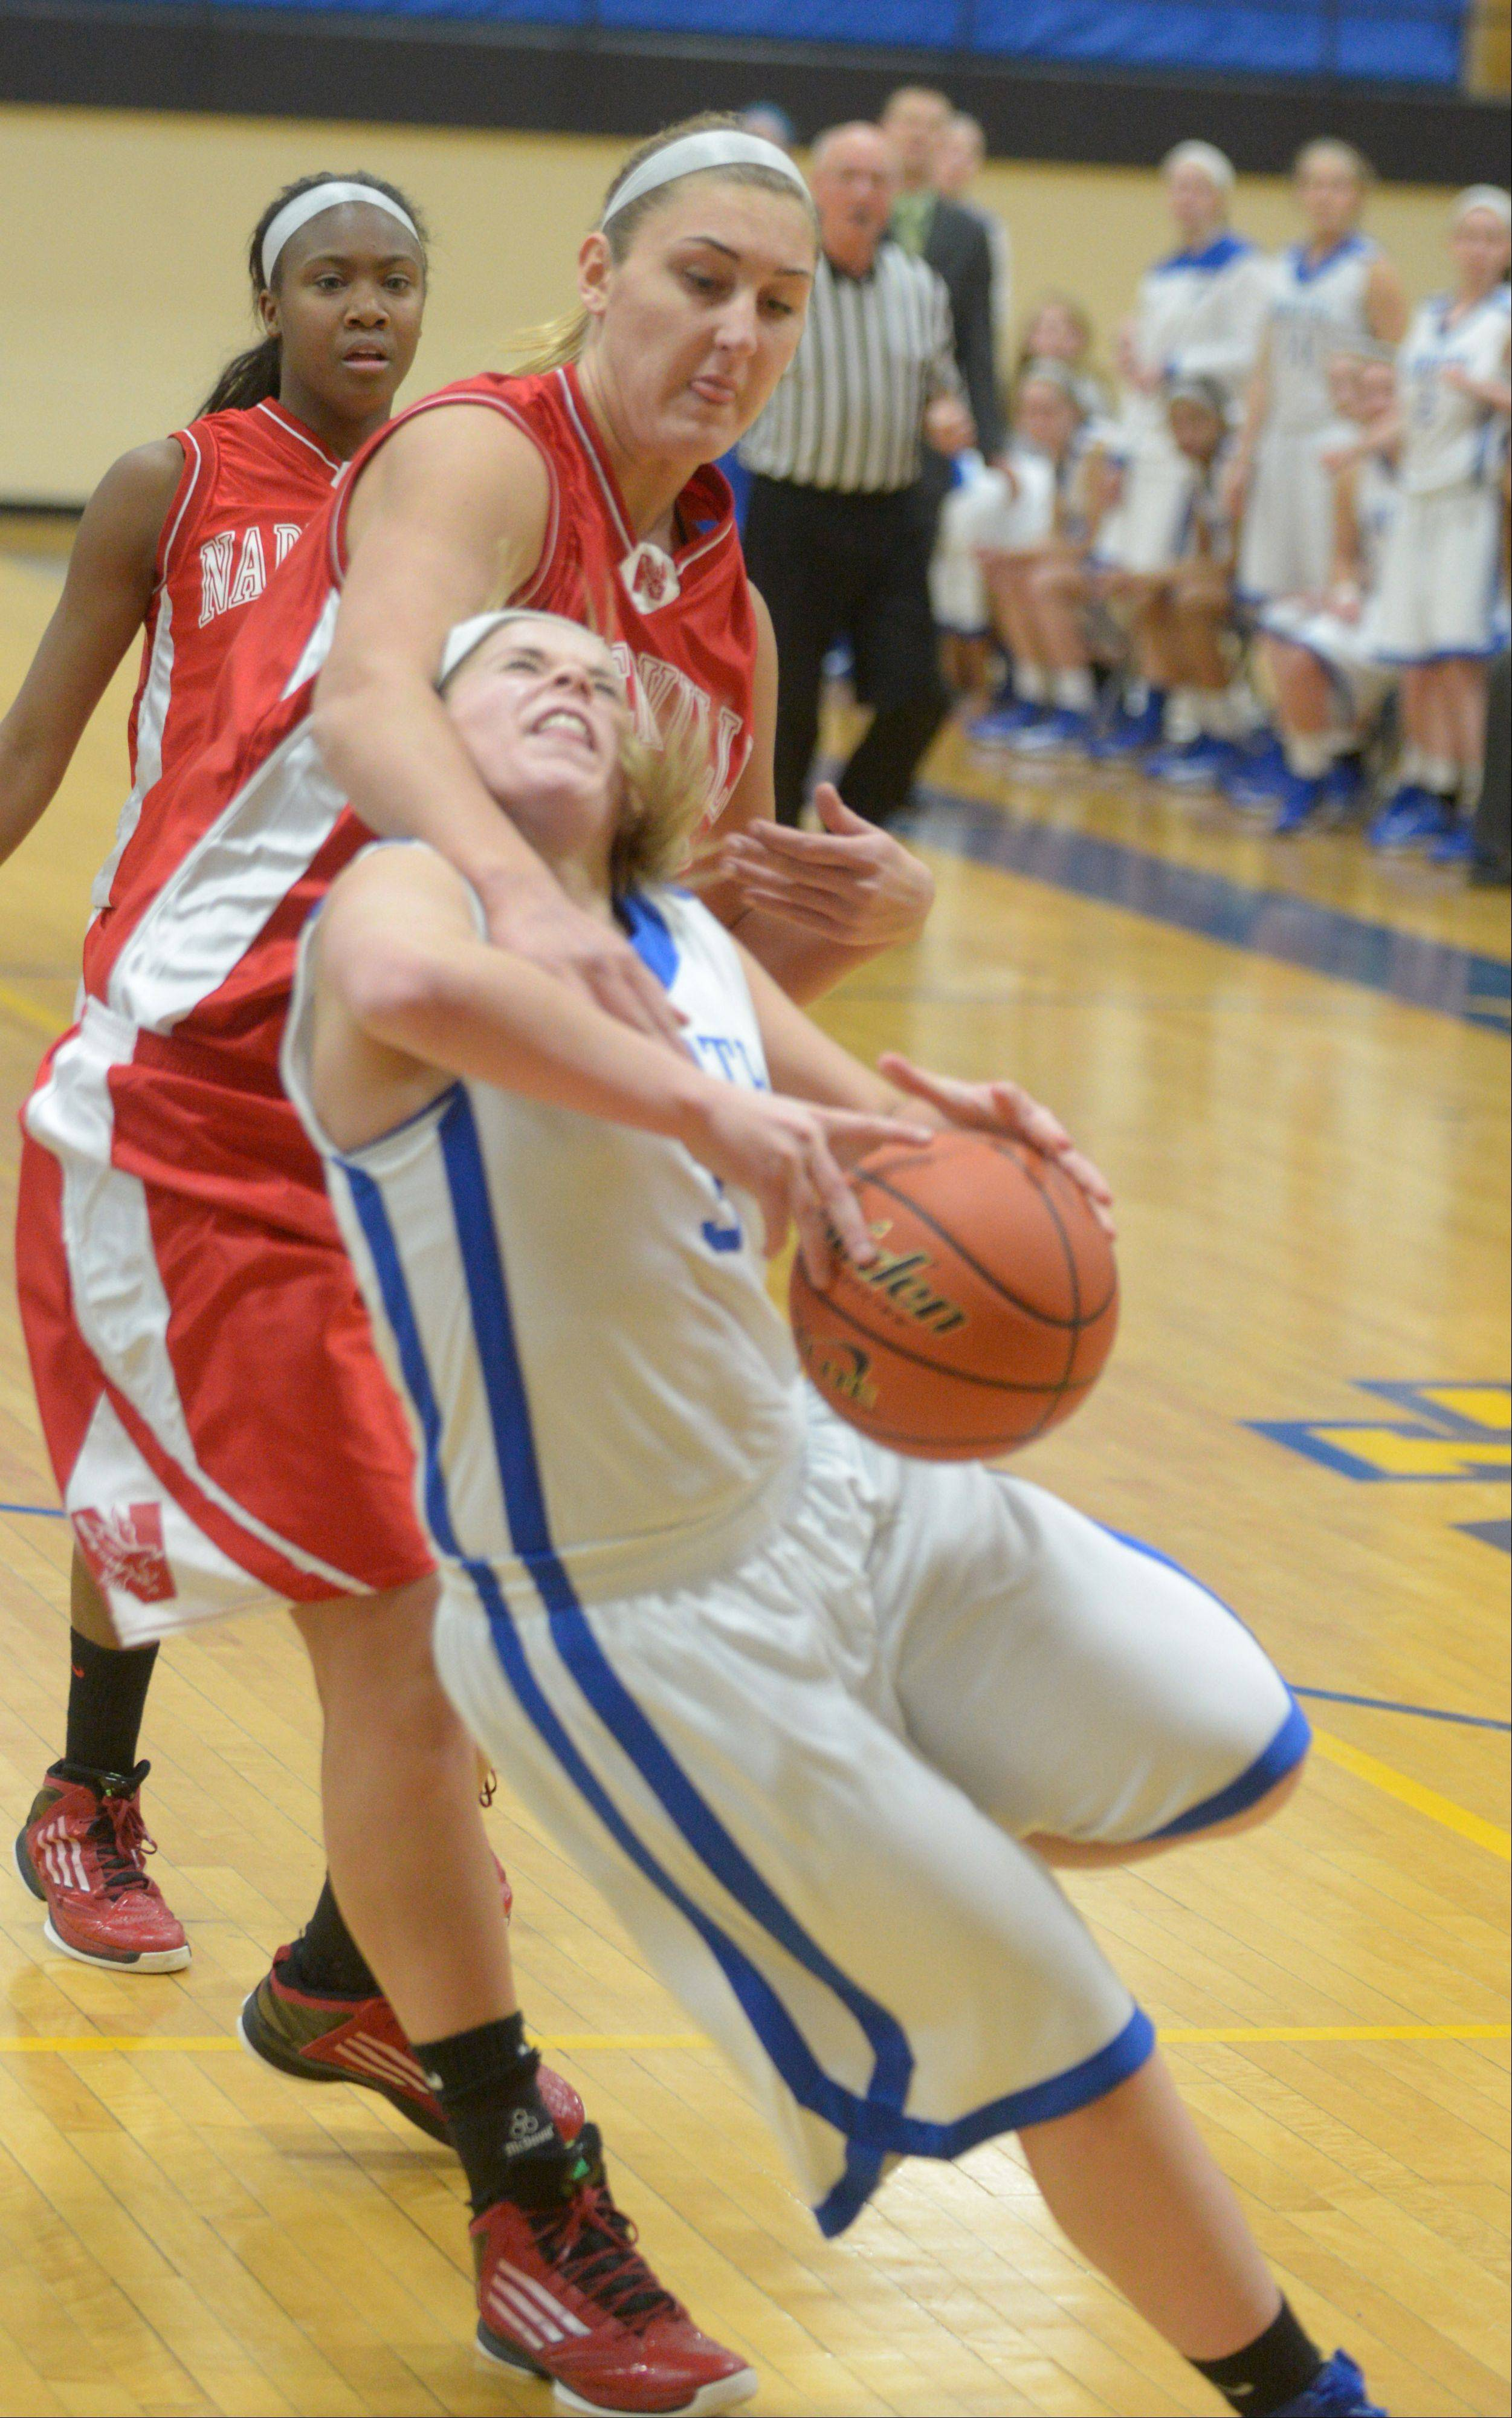 Naperville Central's Victoria Trowbridge pulls down Wheaton North's Reilly Stewart during Thursday's game.